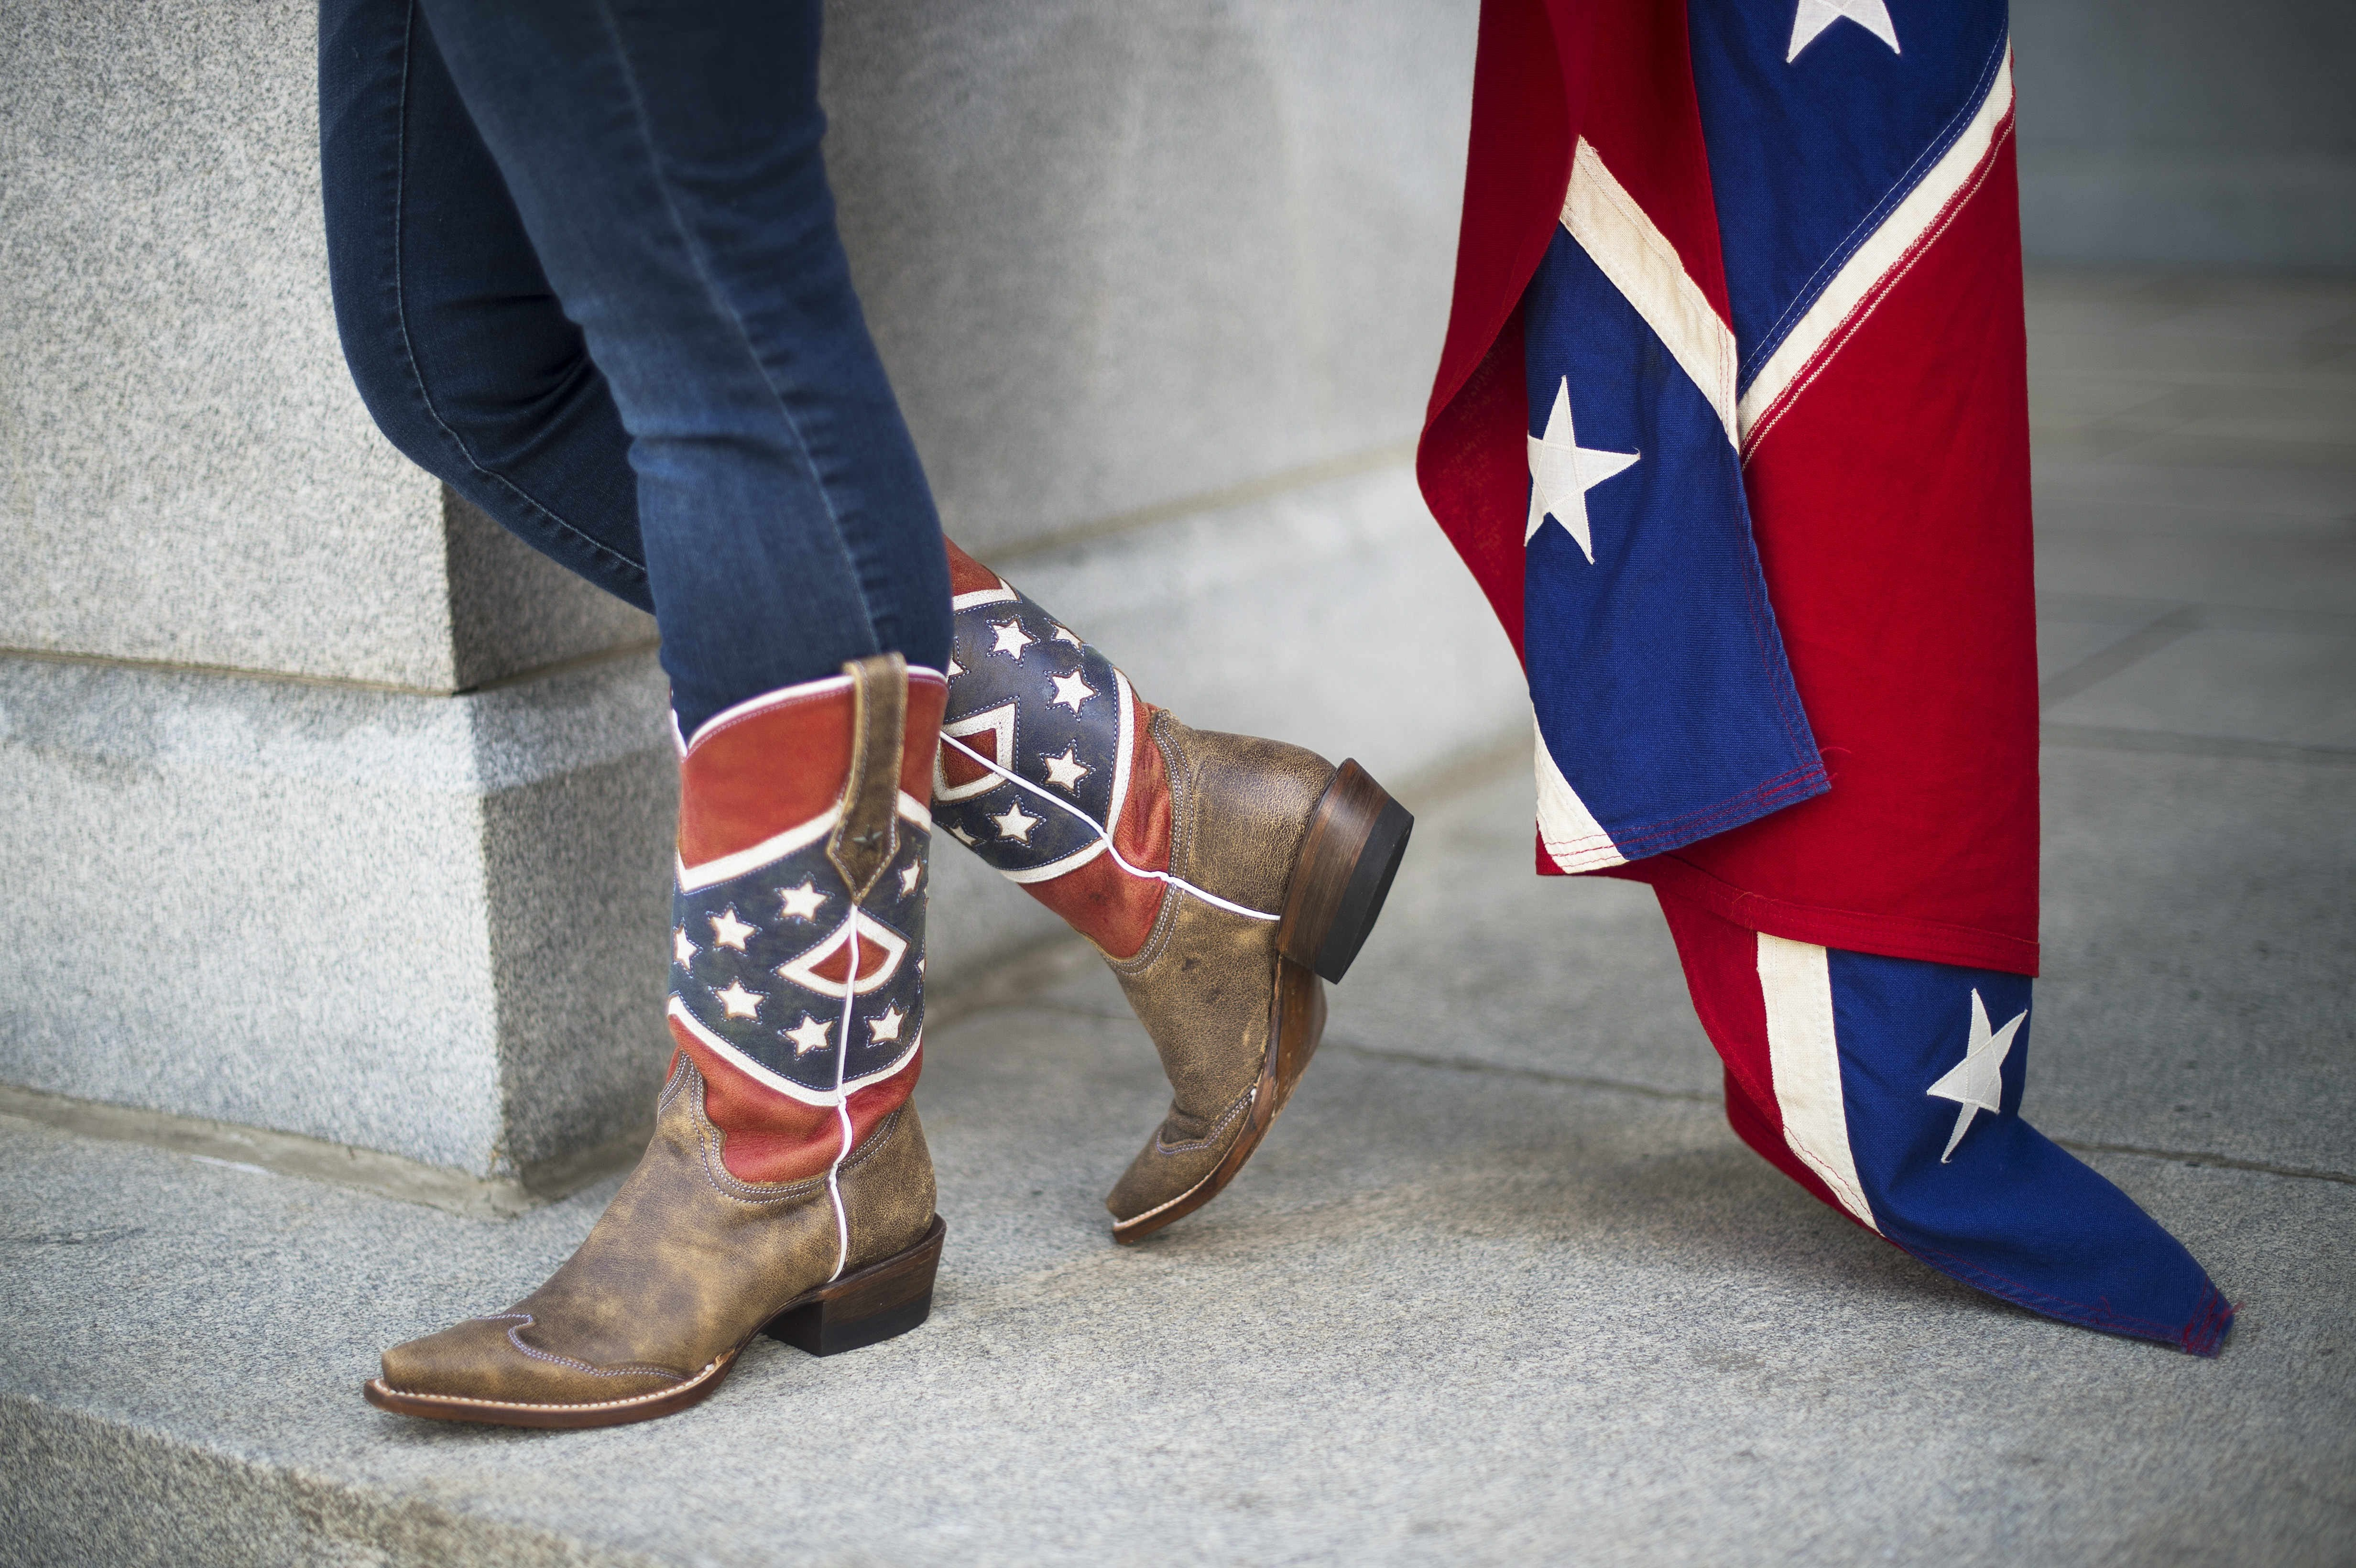 white supremacy in the south Tony dokoupil investigates white supremacy's rise in america and how its adherents hope to infiltrate the mainstream.